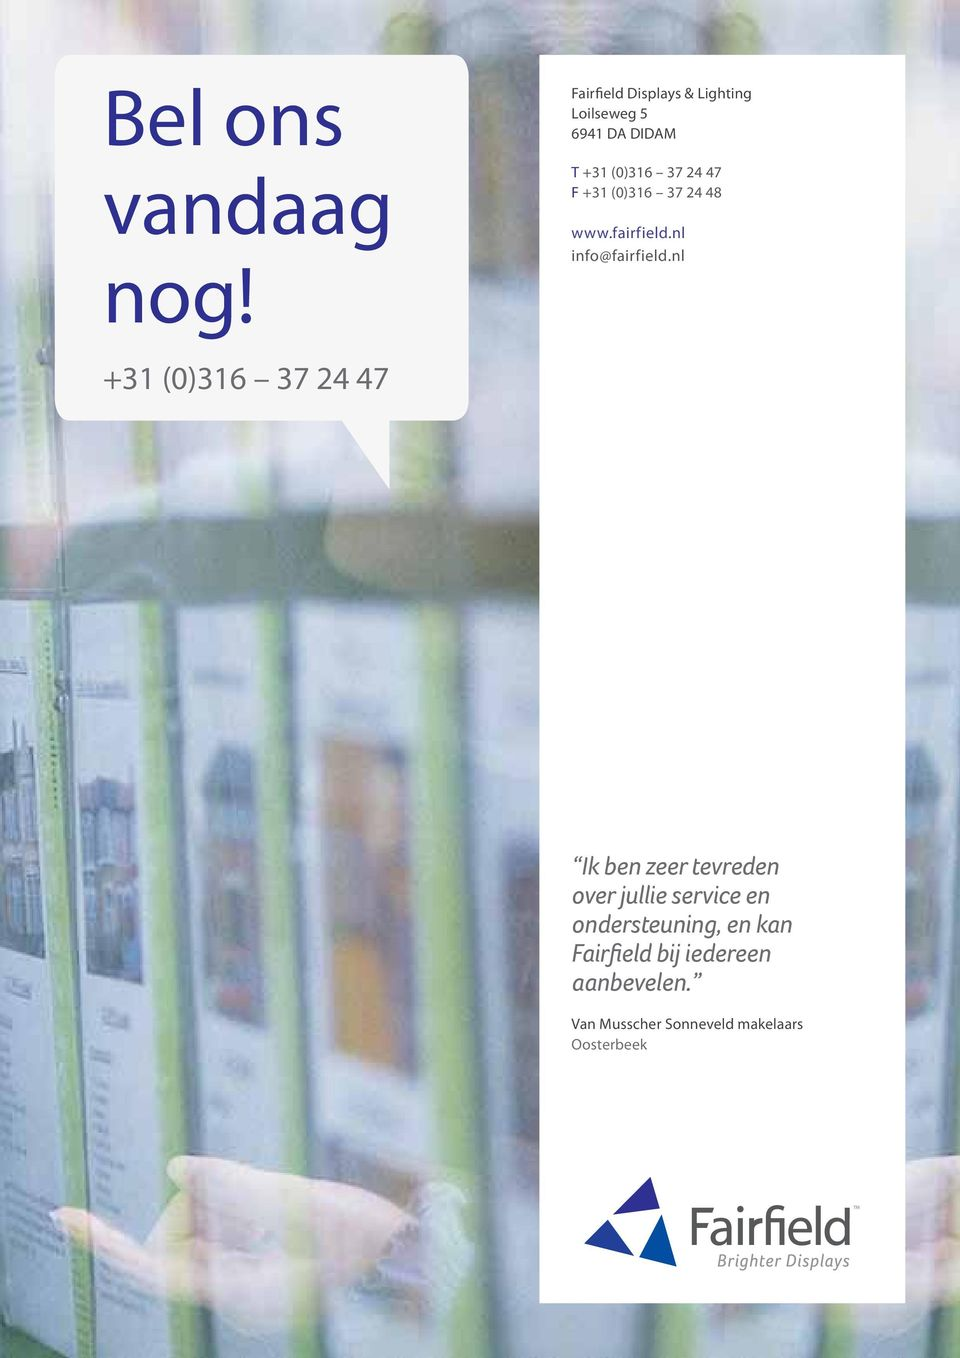 +31 (0)316 37 24 48 www.fairfield.nl info@fairfield.